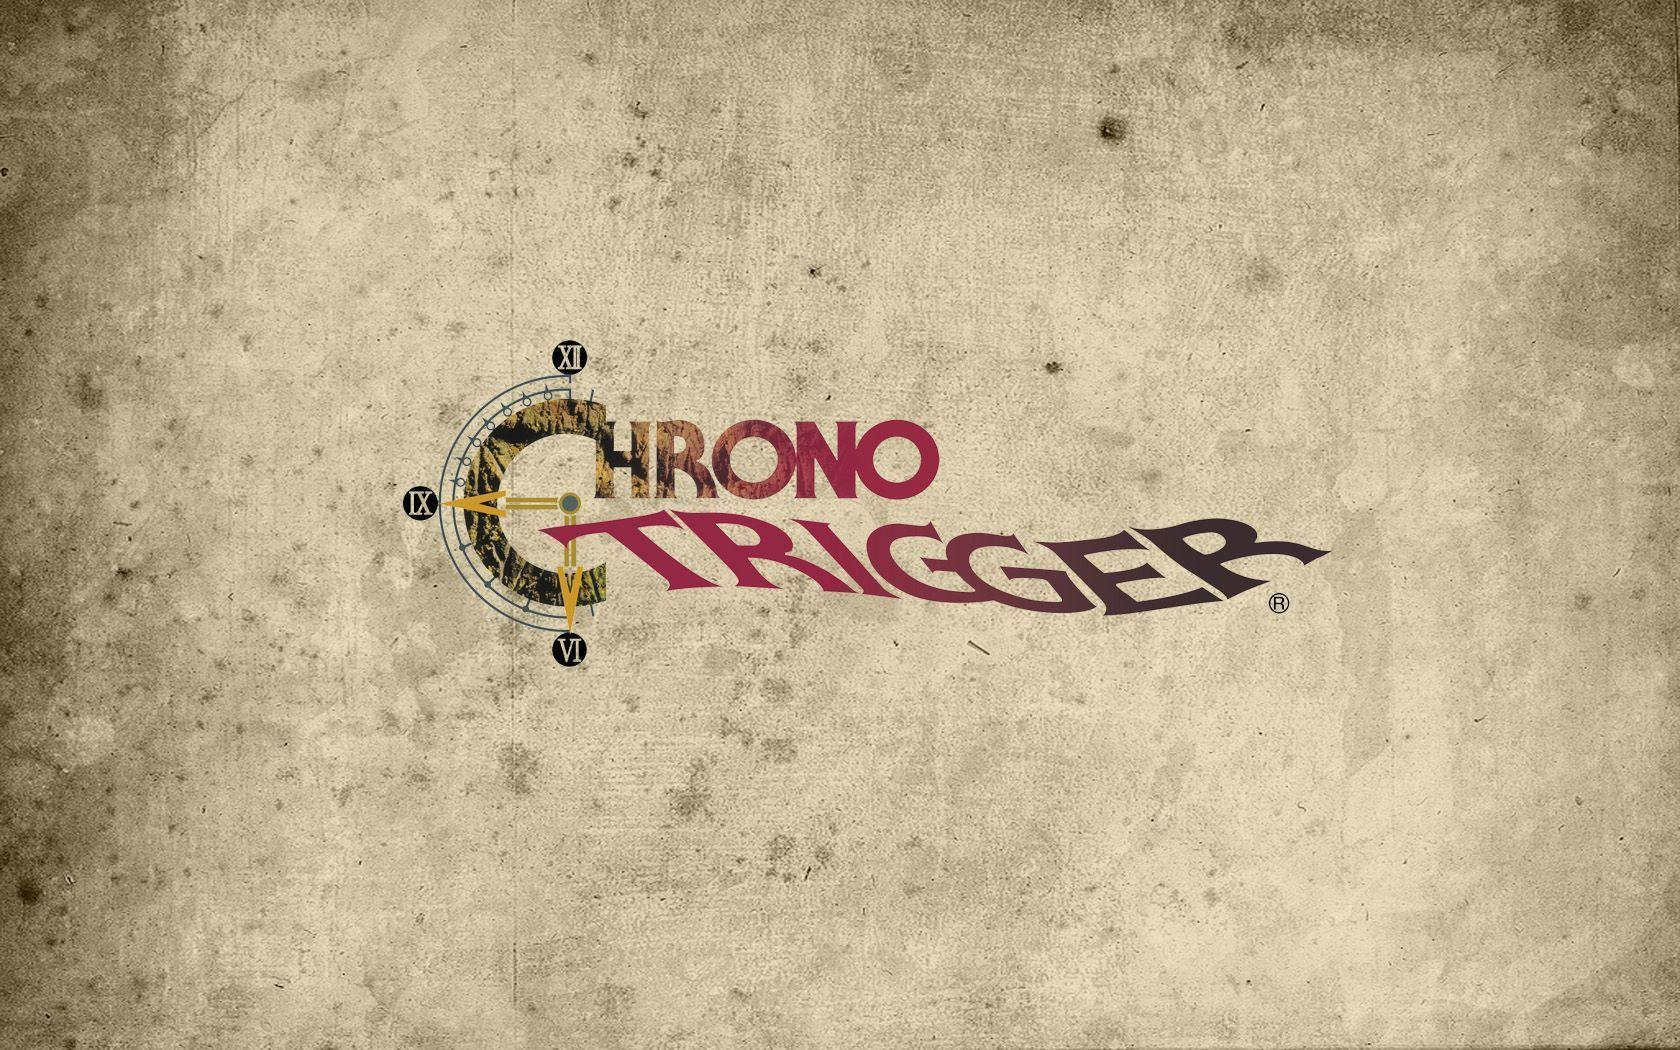 My Chrono Trigger Wallpapers : gaming